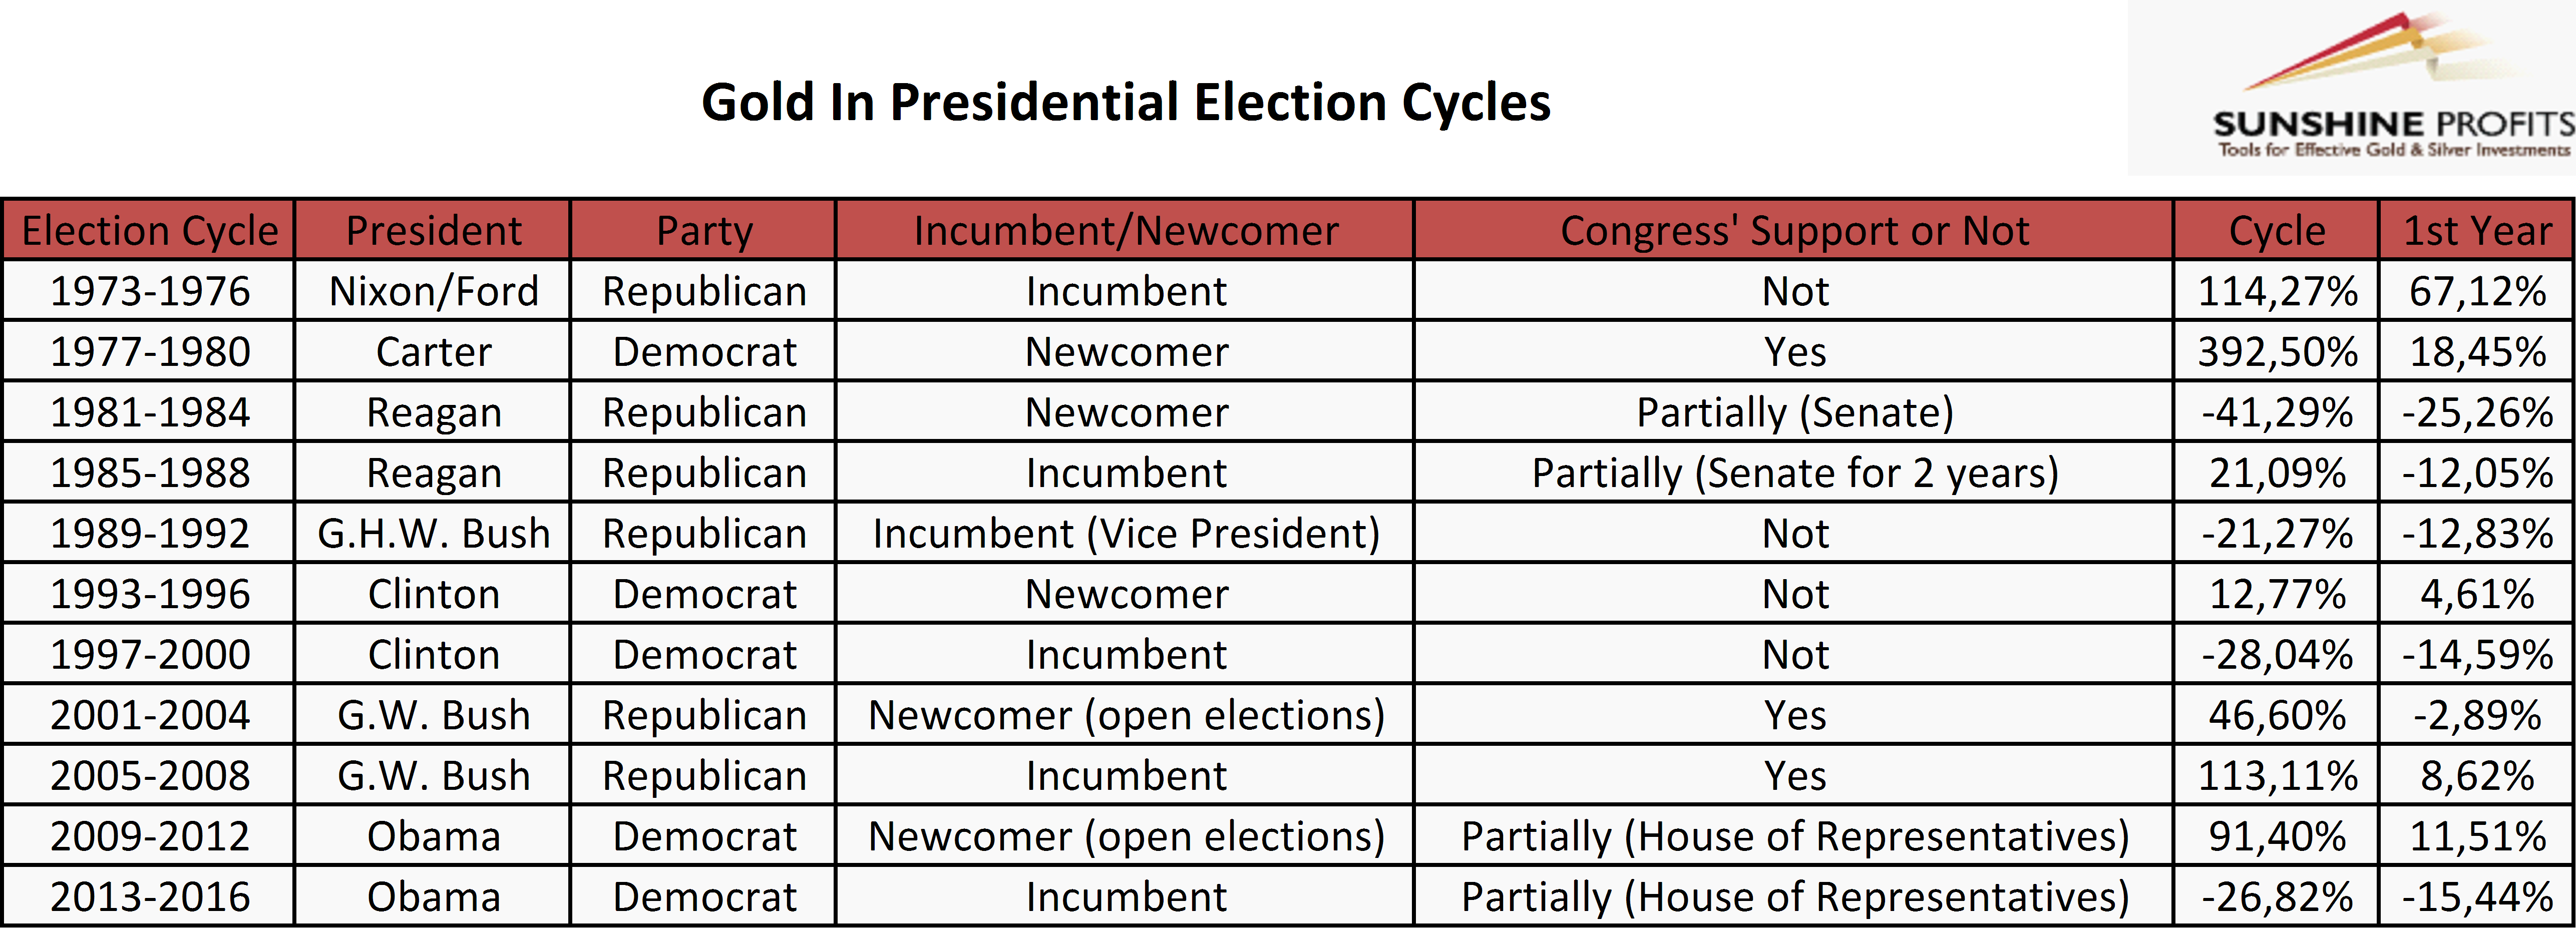 Gold's performance in presidential election cycles between 1973 and 2016